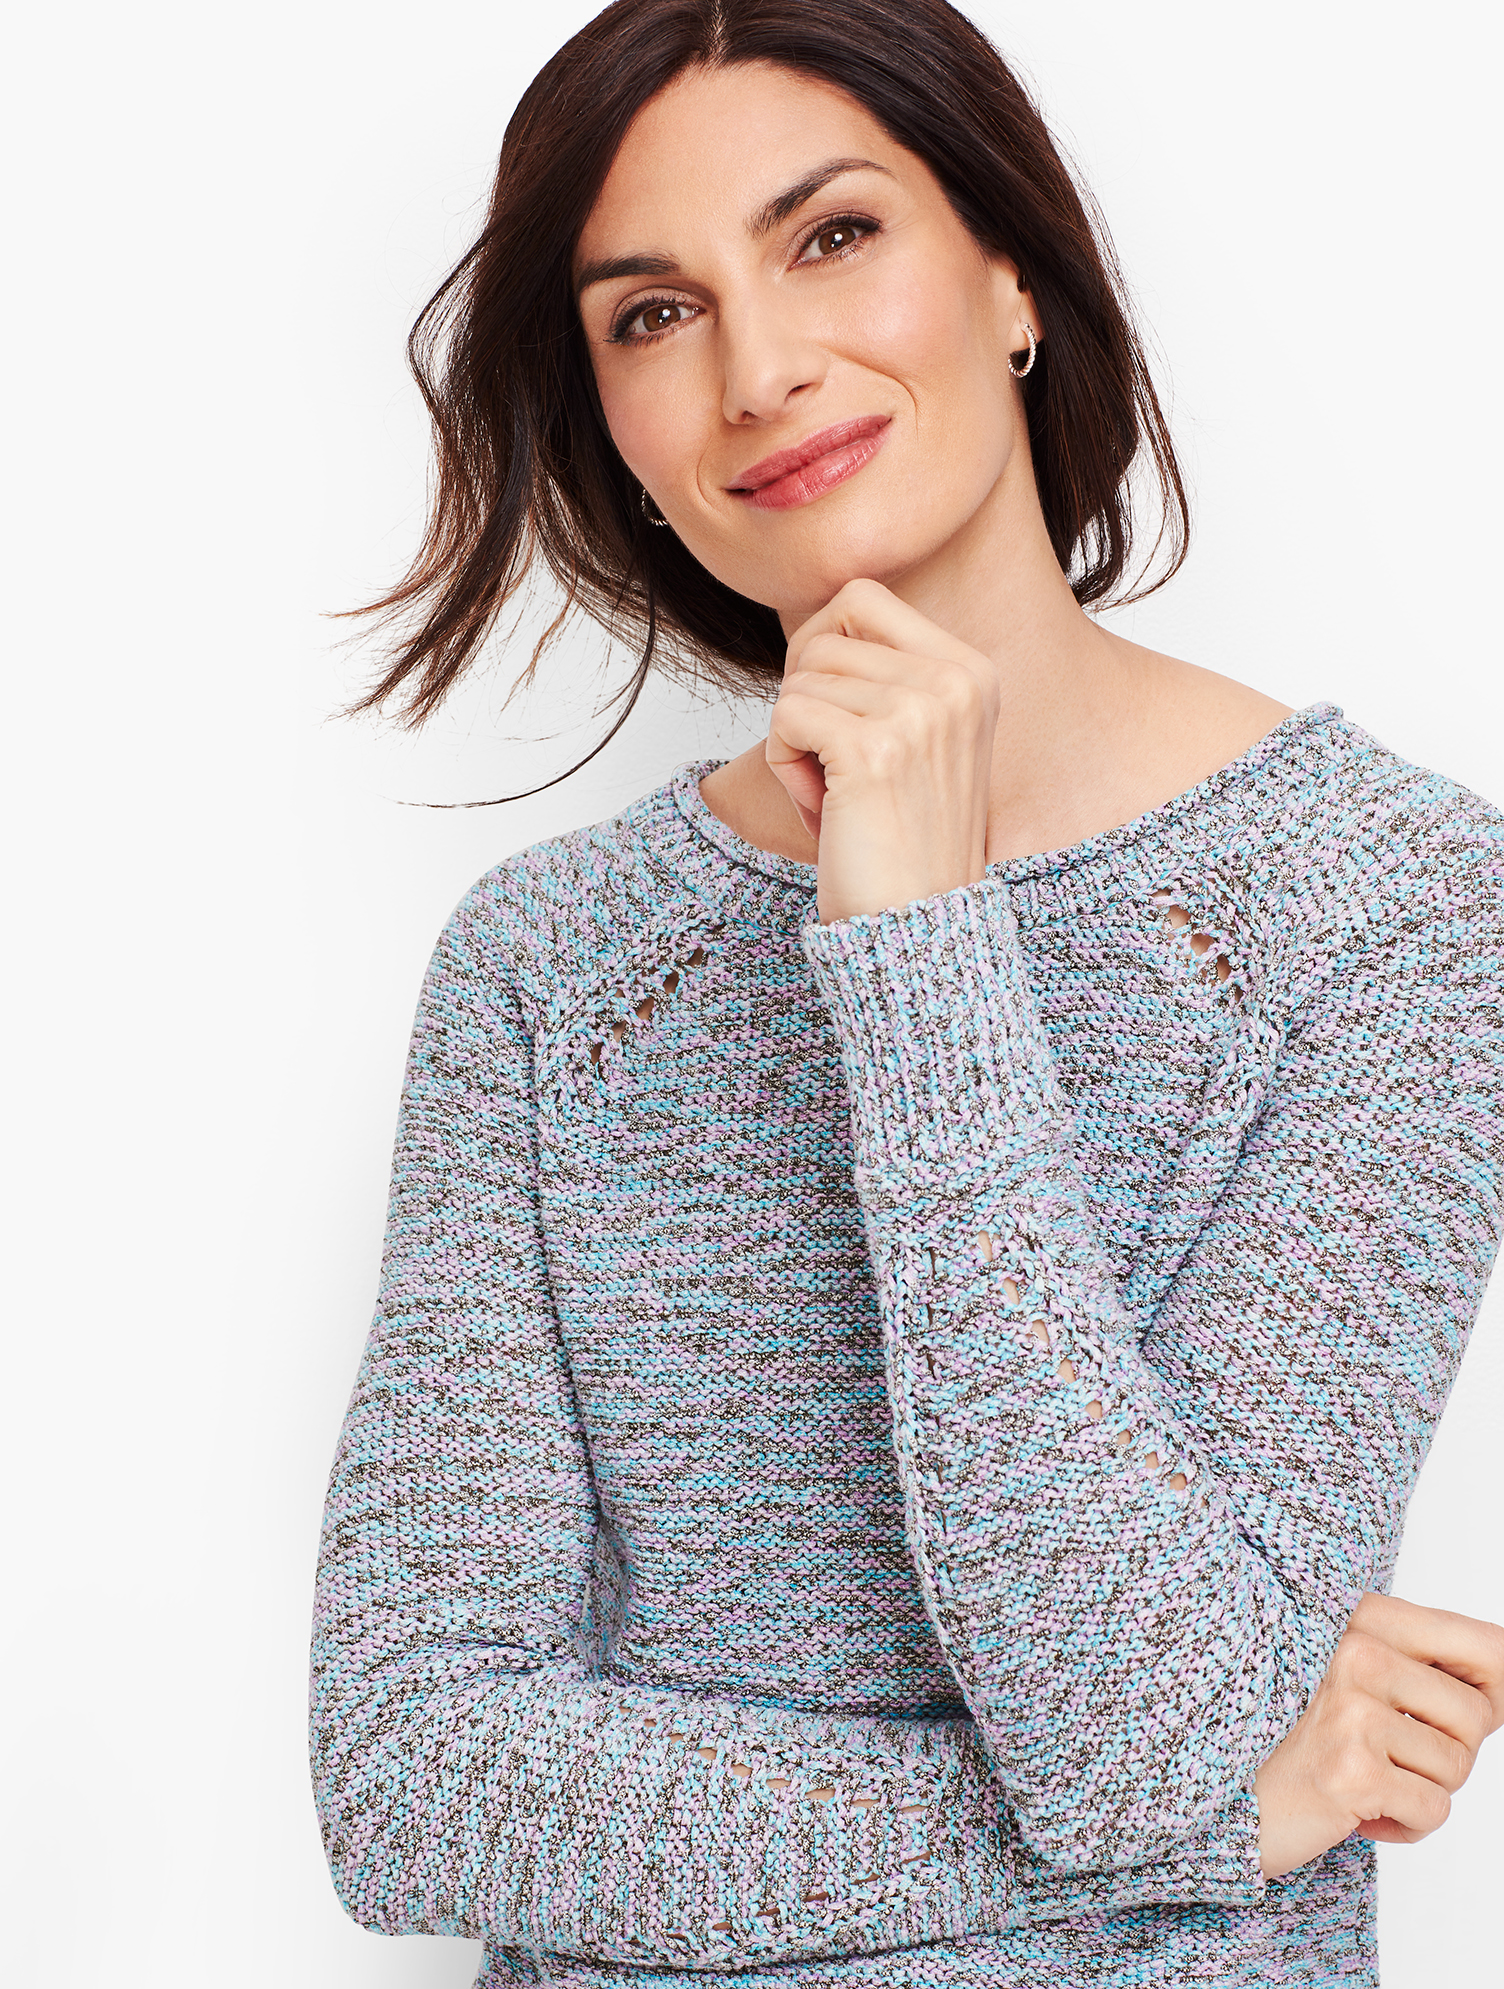 A unique dye process gives our newest sweater dimensional color, radiating warmth and style. Features Sleeve Length: LongHits: At HipNeckline: BateauImported Fit: Misses: 25 inches; Petite: 24 1/2 inches; Plus Size: 27 1/2 inches; Plus Size Petite: 26 inches Material: 66% Cotton, 34% Polyester Care: Machine Wash; Dry on Gentle Cycle Textured Knit Sweater - Grey Sky - XL Talbots